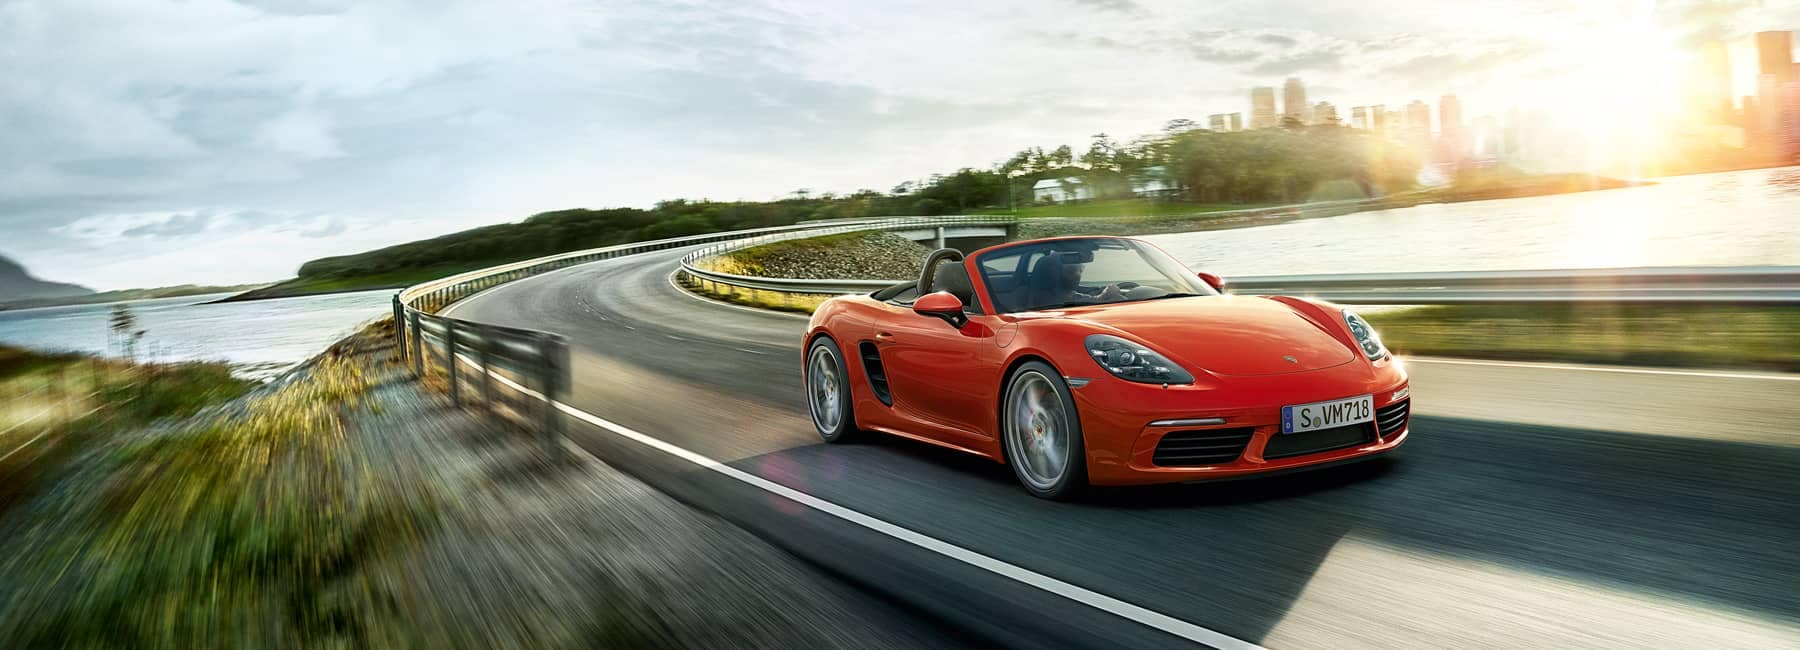 2019 Porsche 718 Boxster Model Review with Prices, Photos, & Specs at Porsche of Ann Arbor